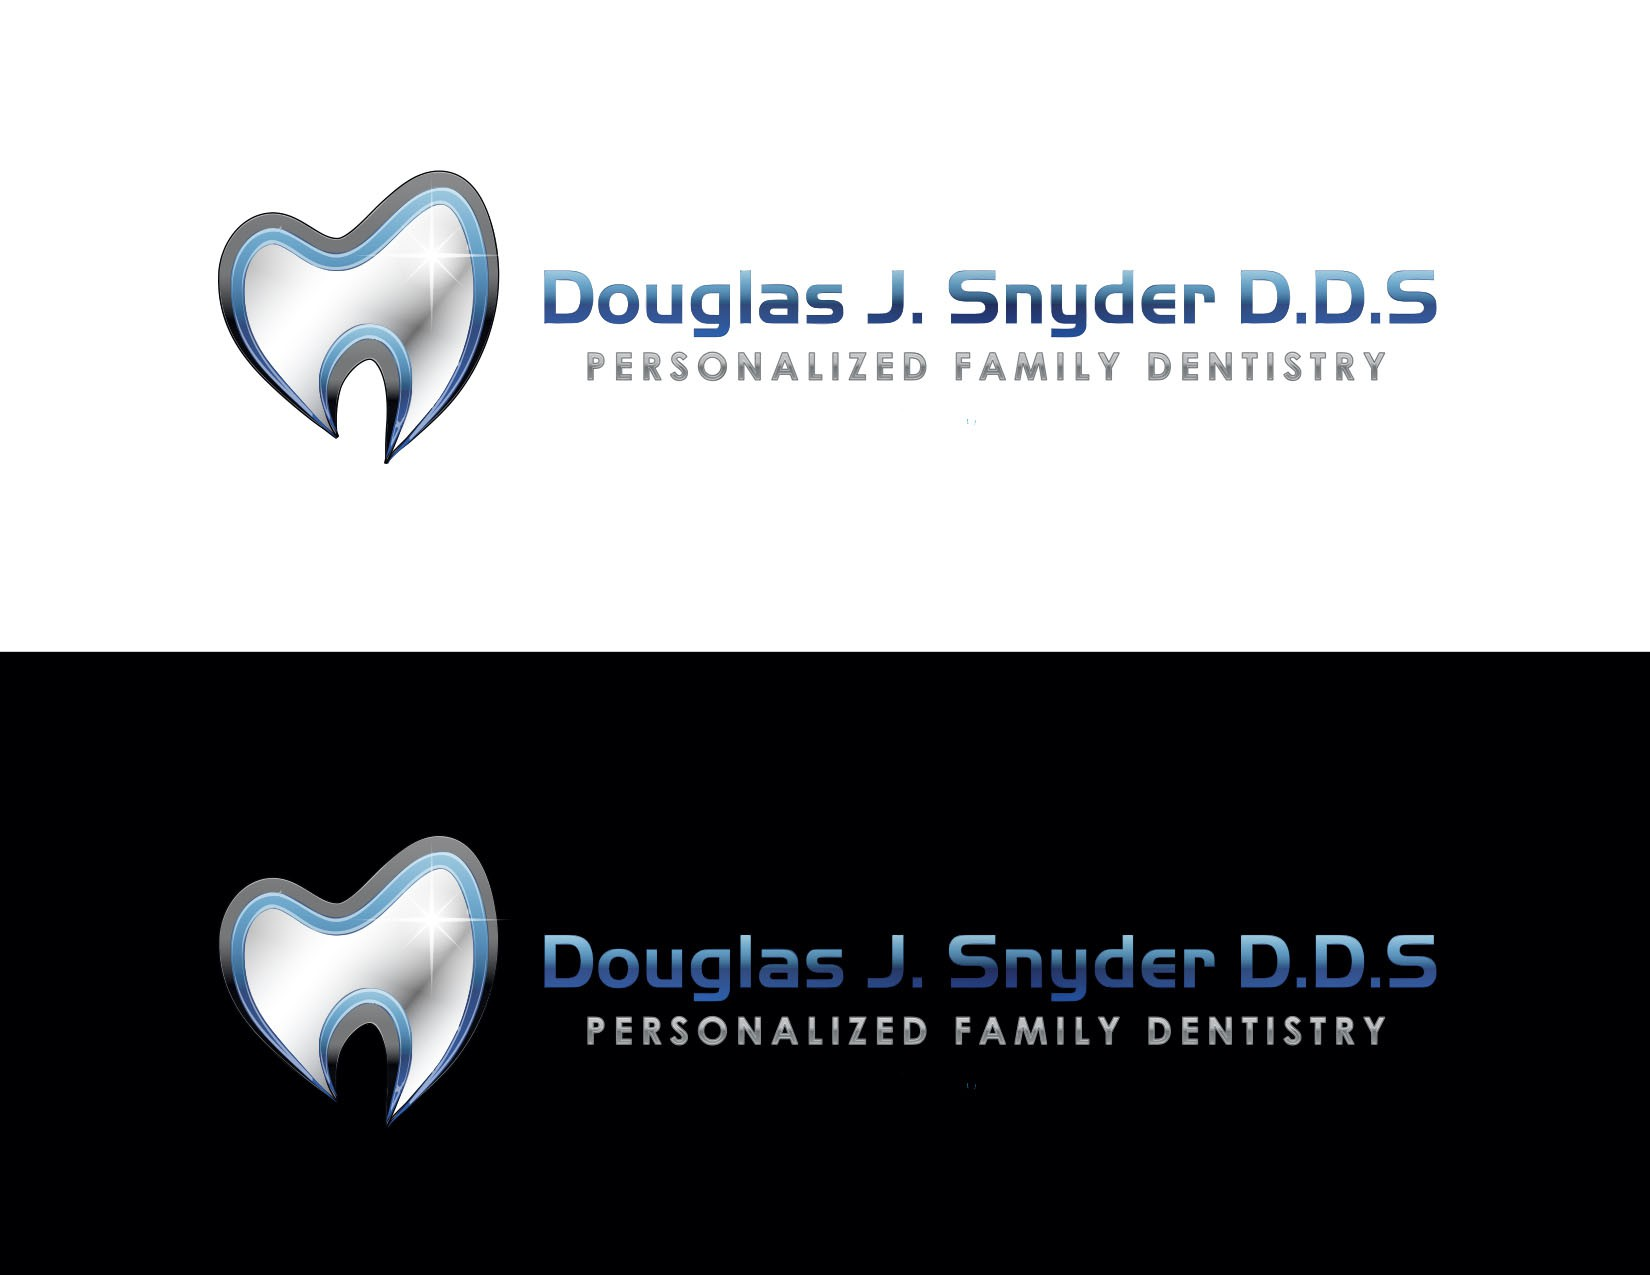 New logo wanted for Douglas J. Snyder D.D.S.